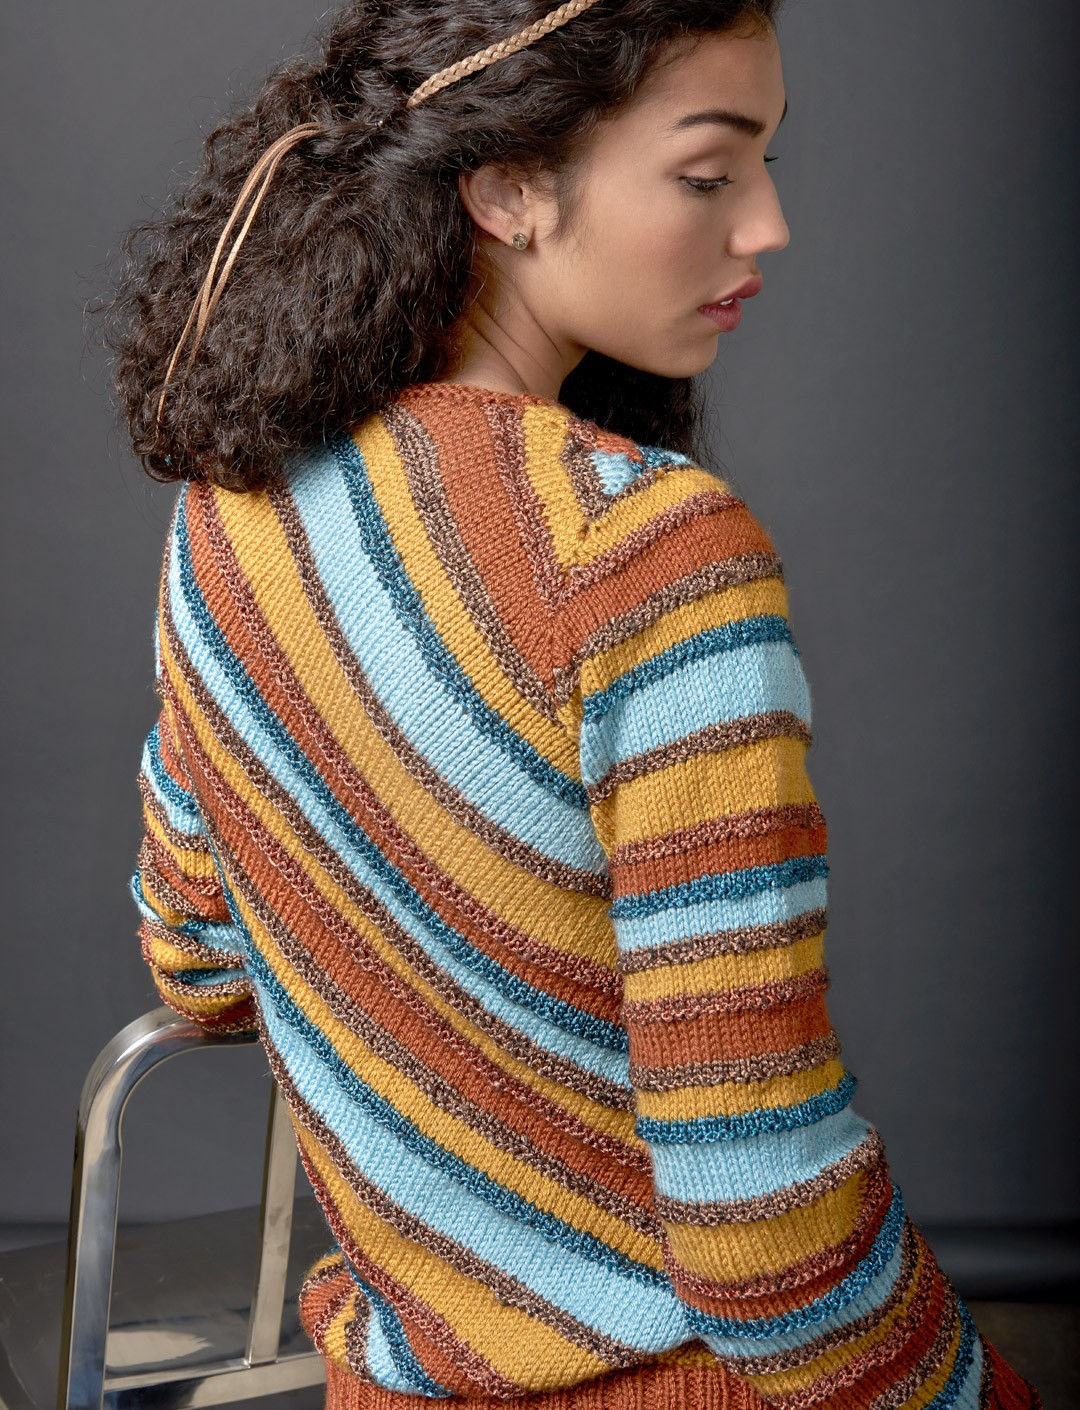 Knitting Pattern Striped Sweater : Patons Diagonal Stripes Sweater, Knit Pattern Yarnspirations